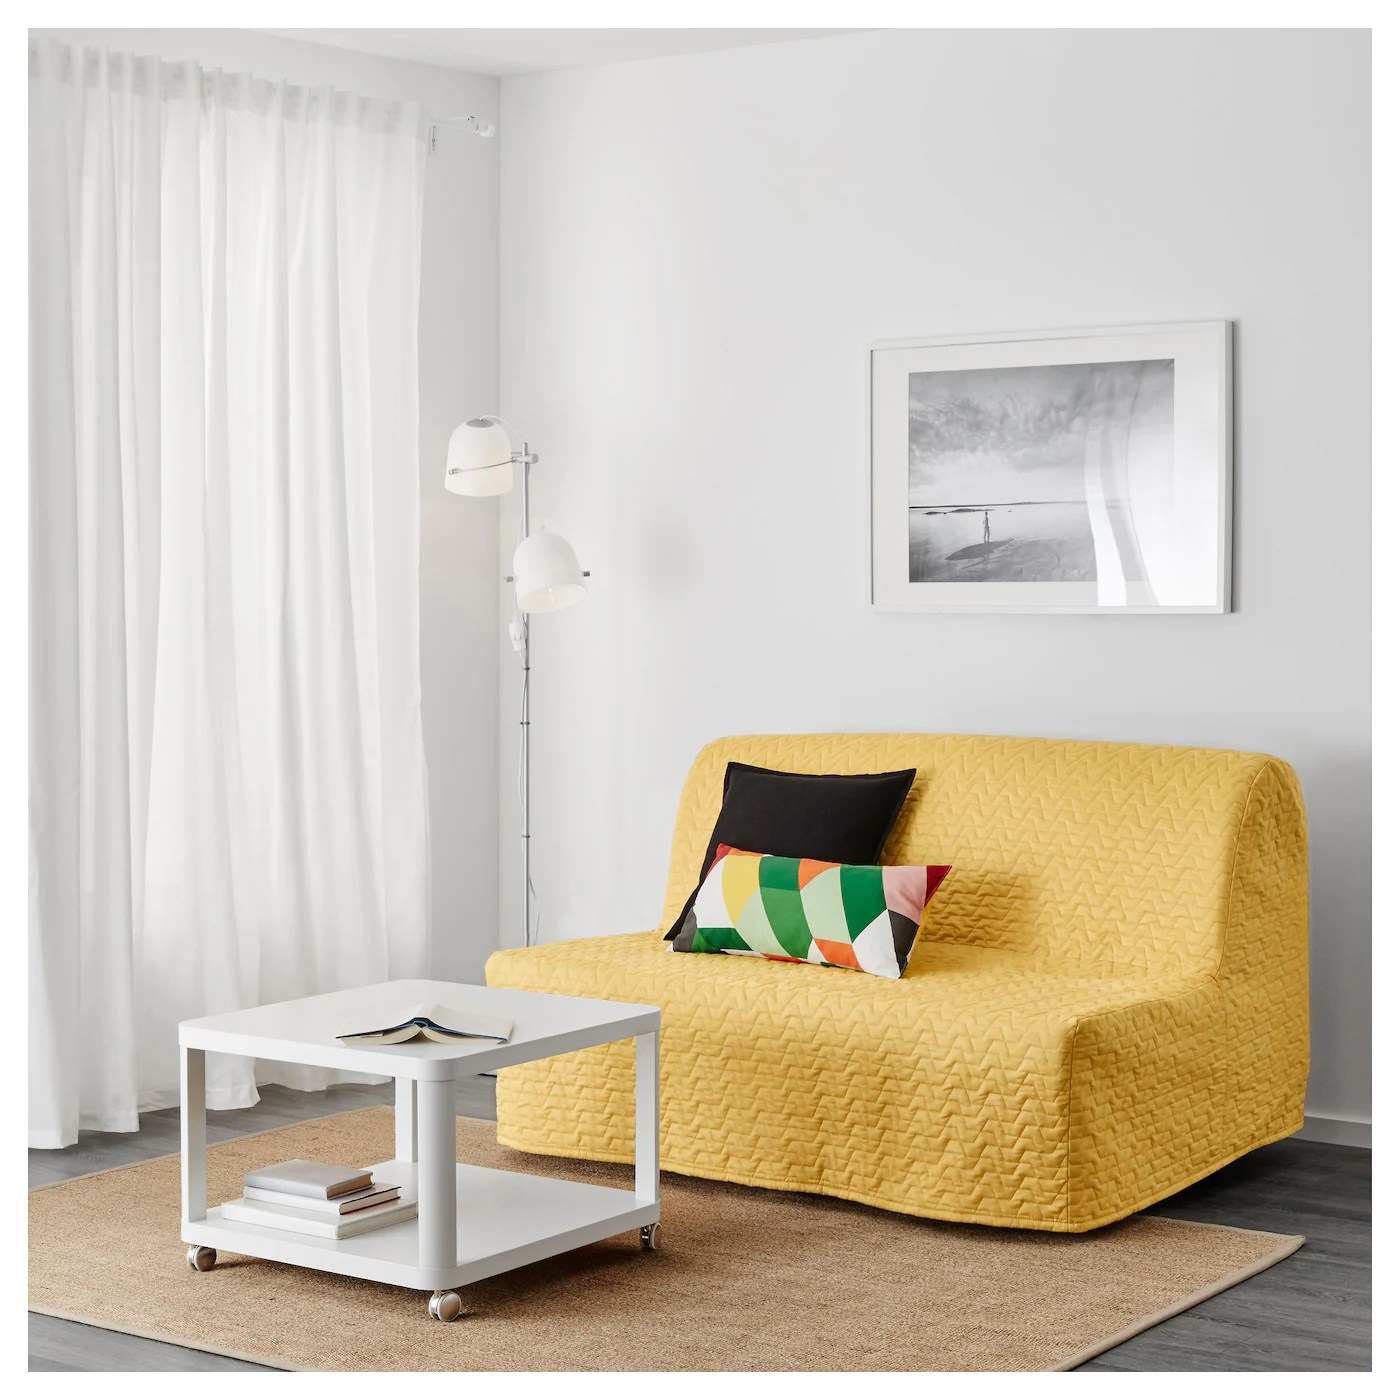 lycksele chair bed french cafe chairs murbo two seat sofa vallarum yellow ikea